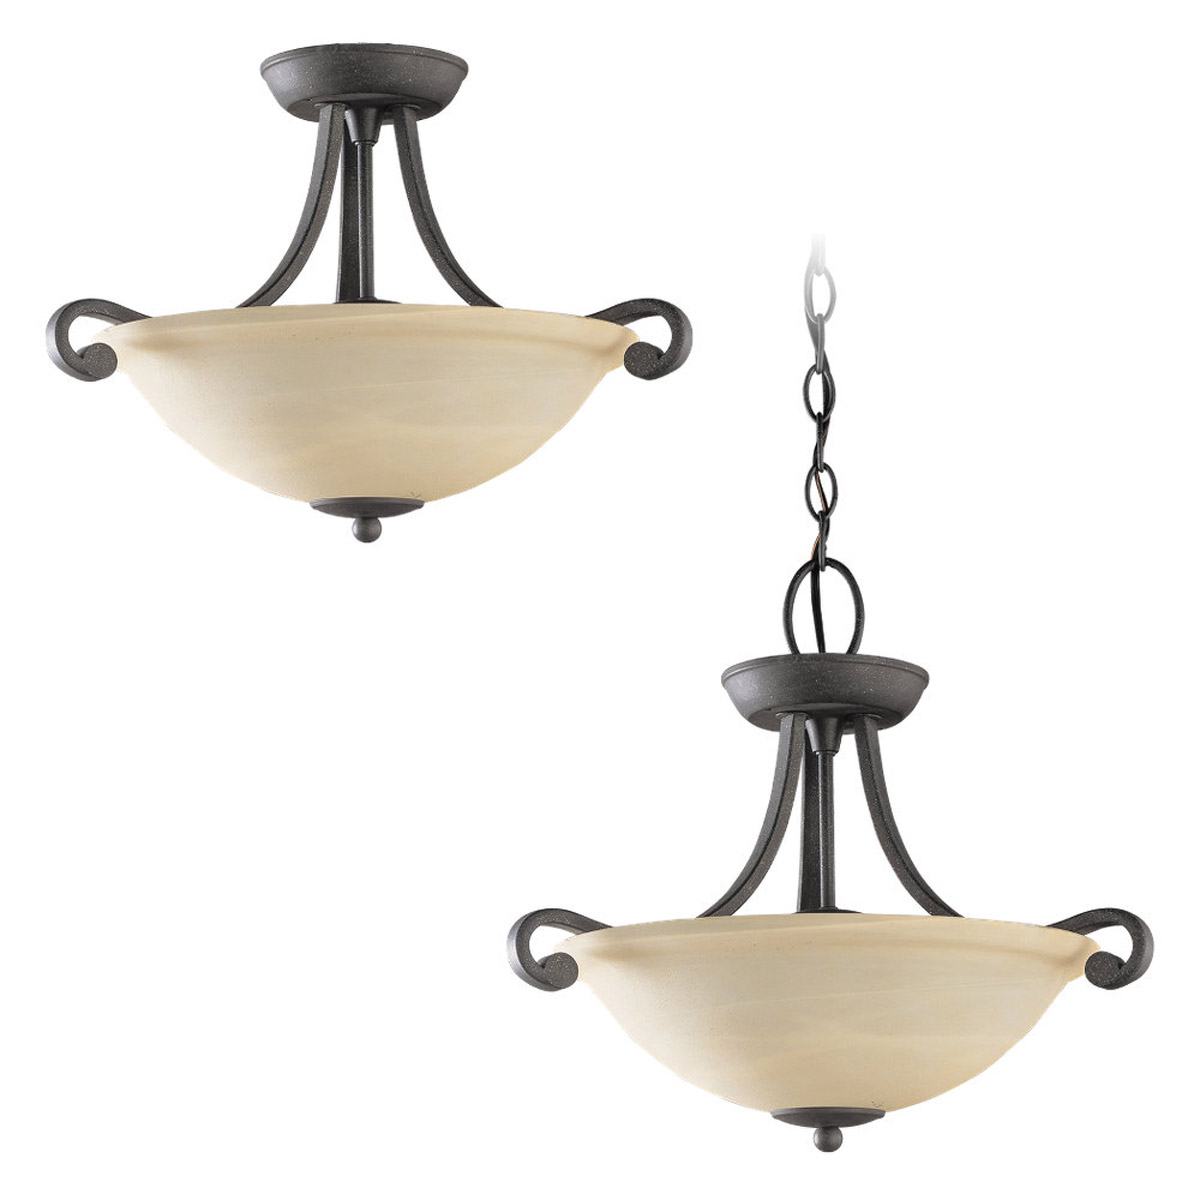 Sea Gull Lighting Serenity 2 Light Semi-Flush Mount Convertible in Weathered Iron 51190-07 photo